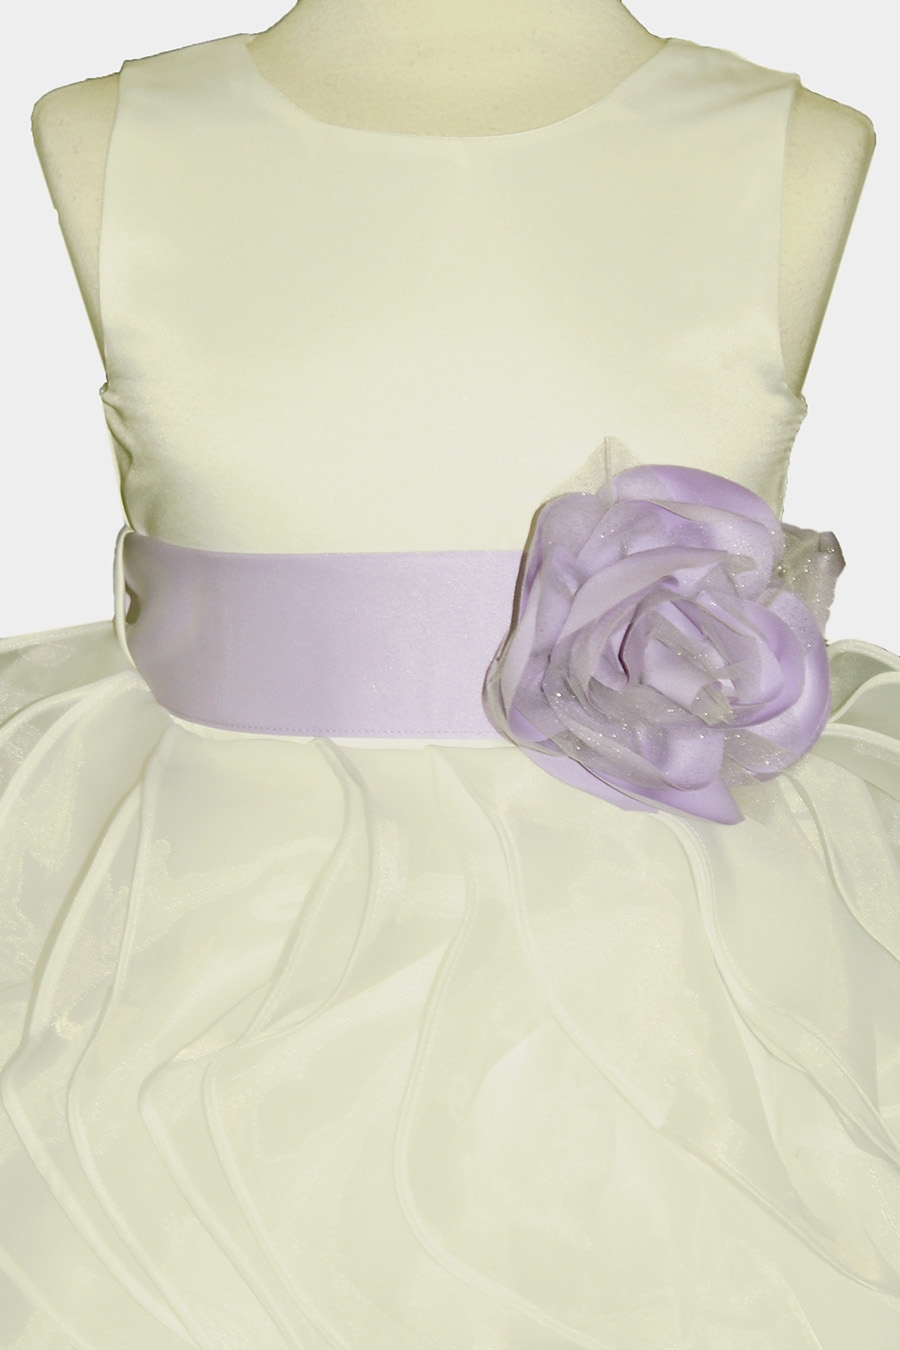 9abe4b371d3 ... Layered Flower Girl Dress w  Satin Flower Sash. Click to Enlarge Click  to Enlarge Click to Enlarge ...